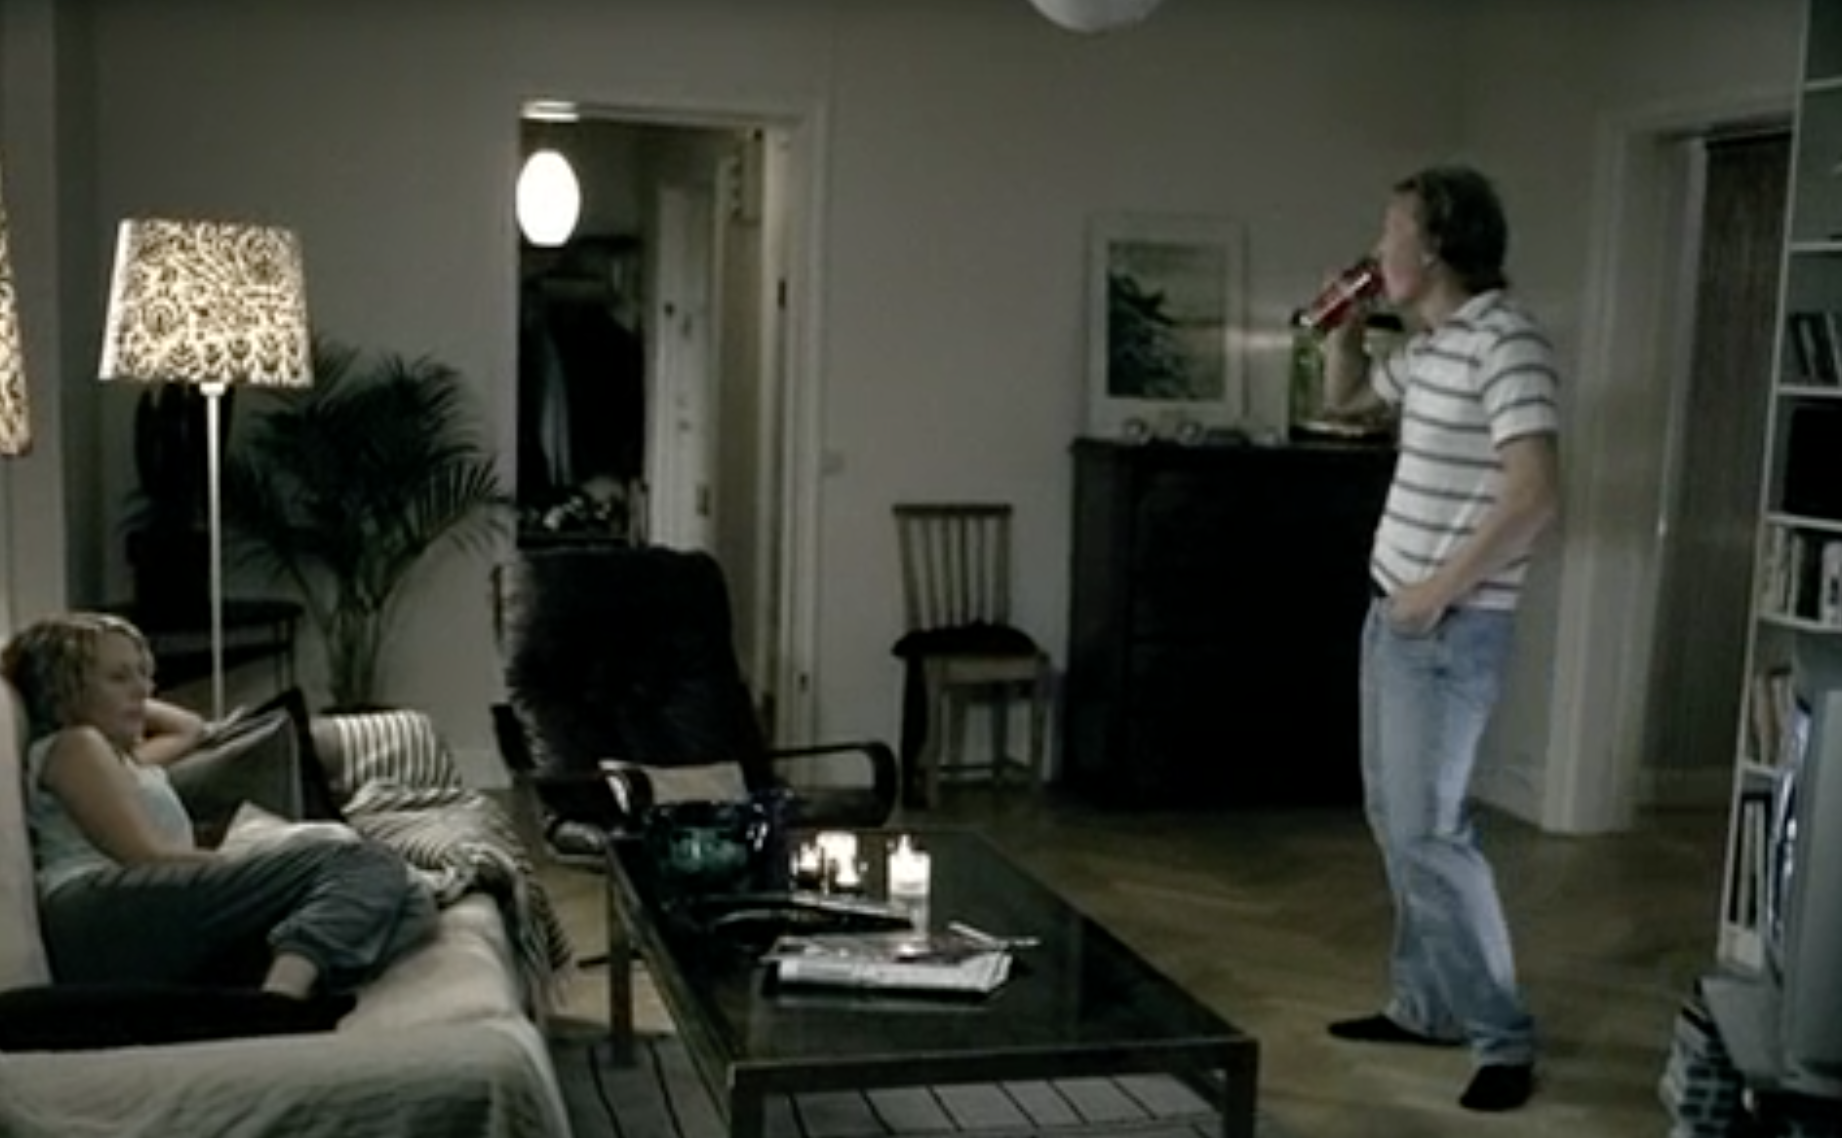 TVC for Sinebrychoff, Finland